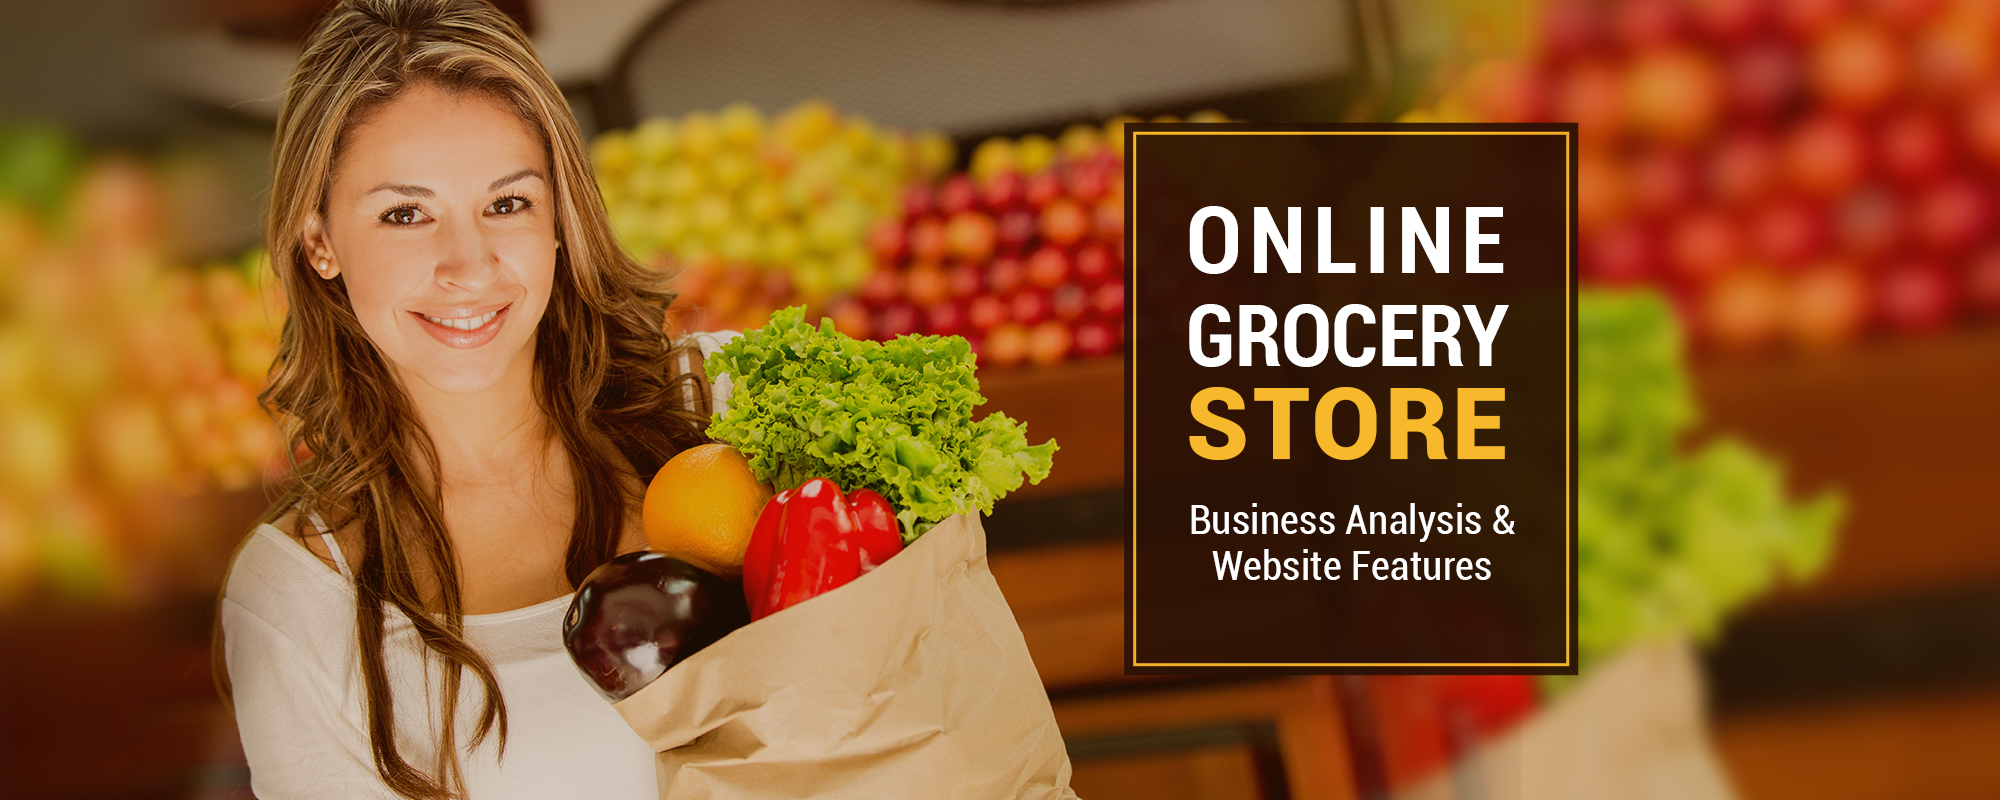 New Online Grocery Stores of India Must take These Website Features Seriously